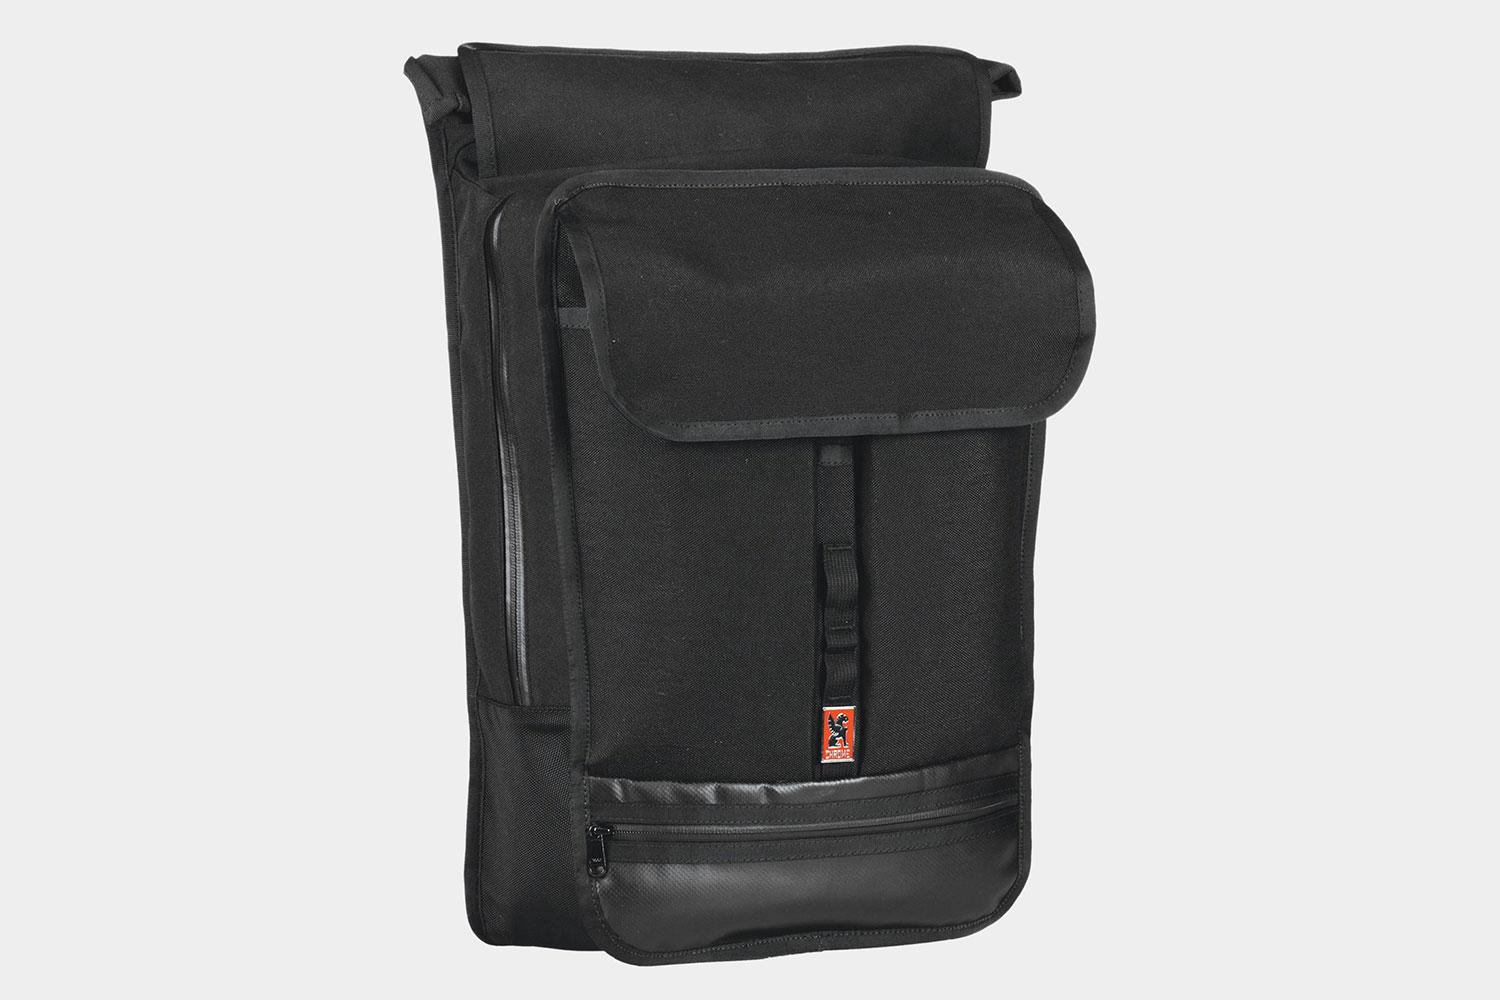 17In Laptop Backpack OWZiJxV9